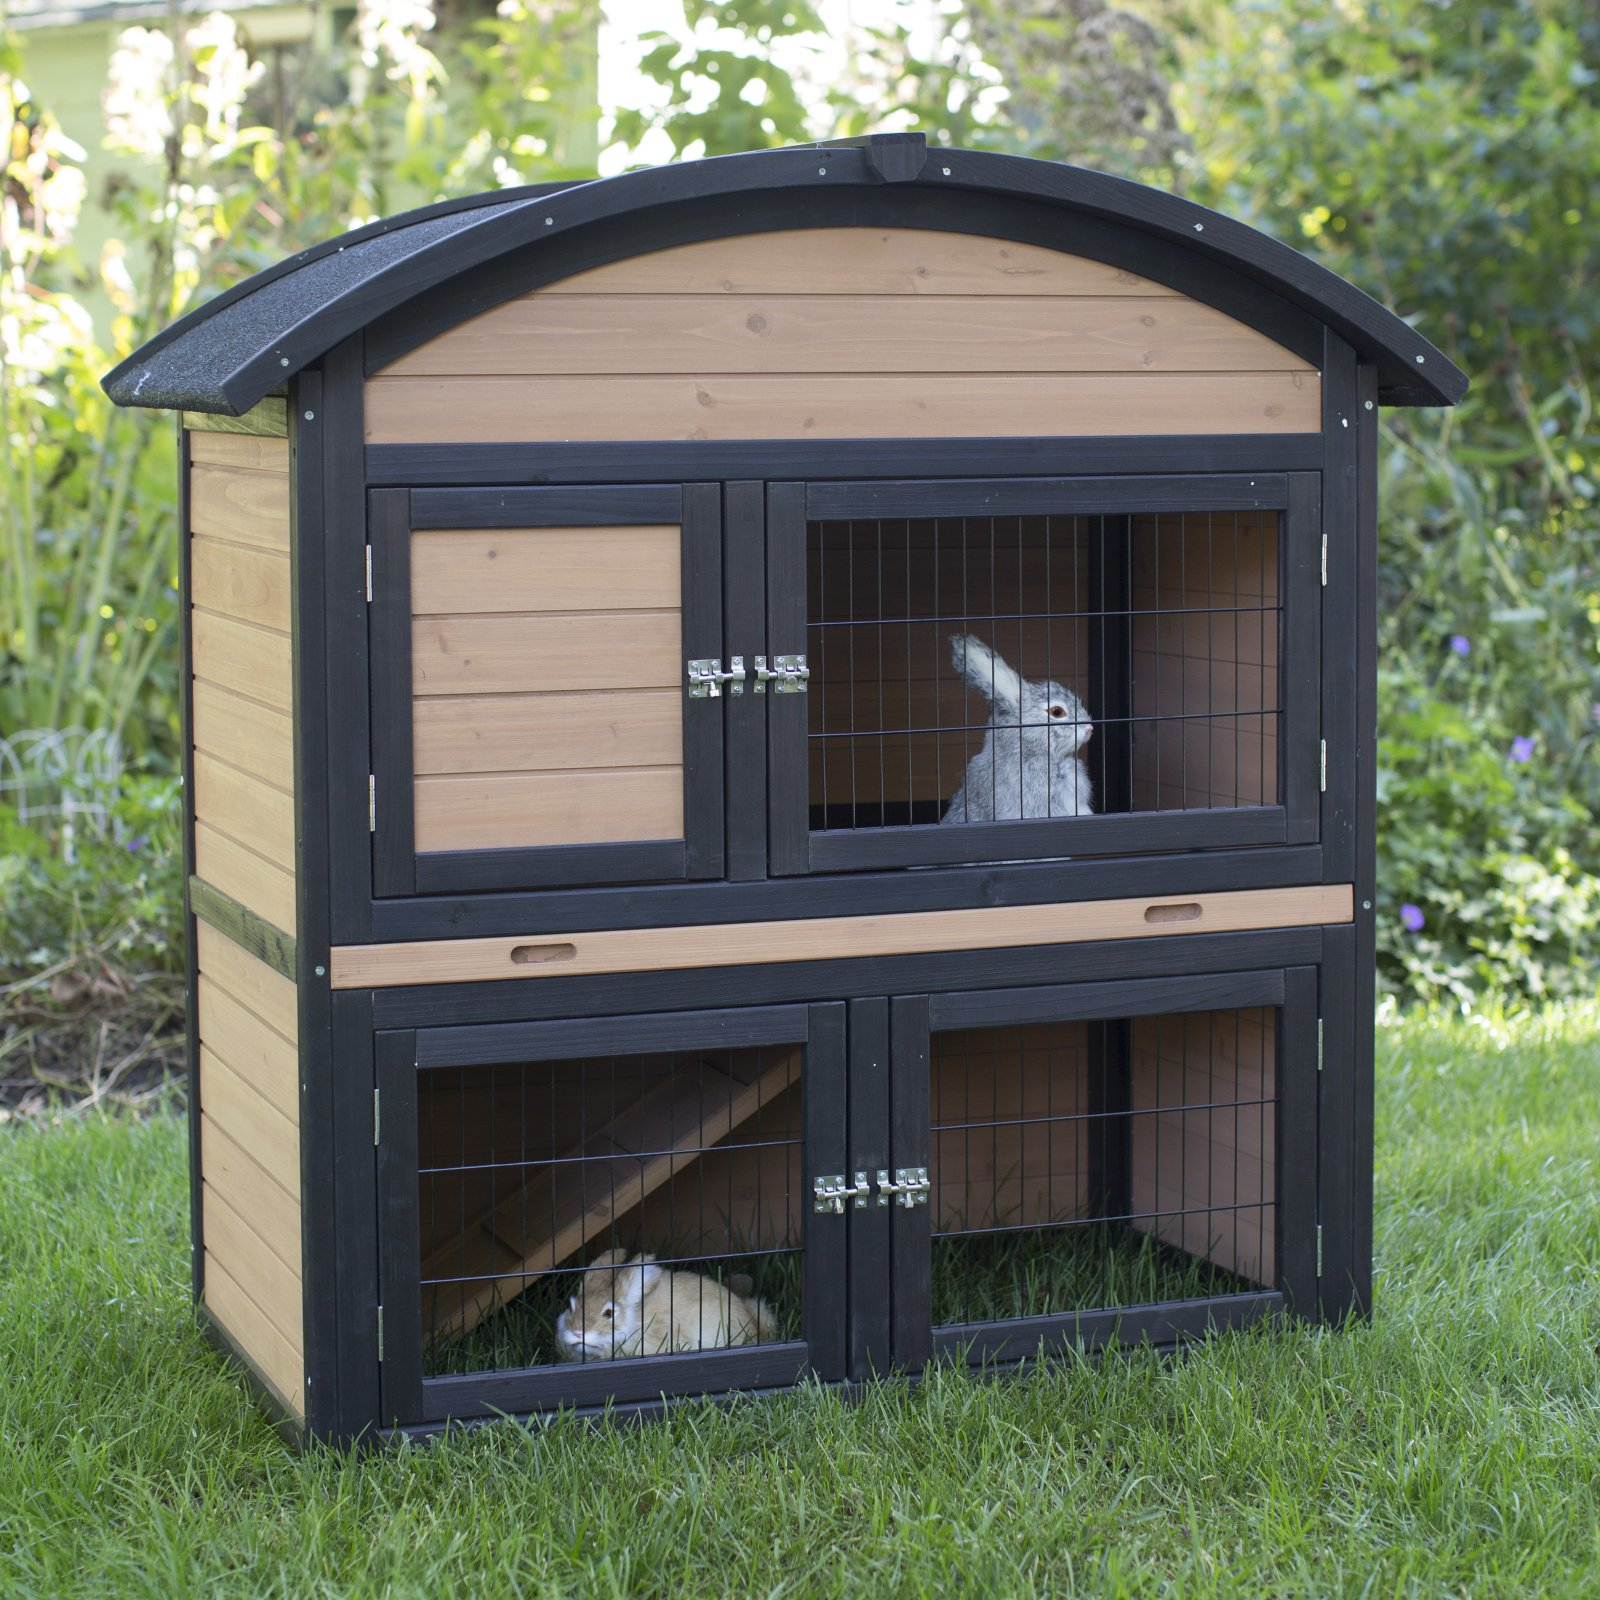 Boomer & George 2 Story Rabbit Hutch with Rounded Roof by